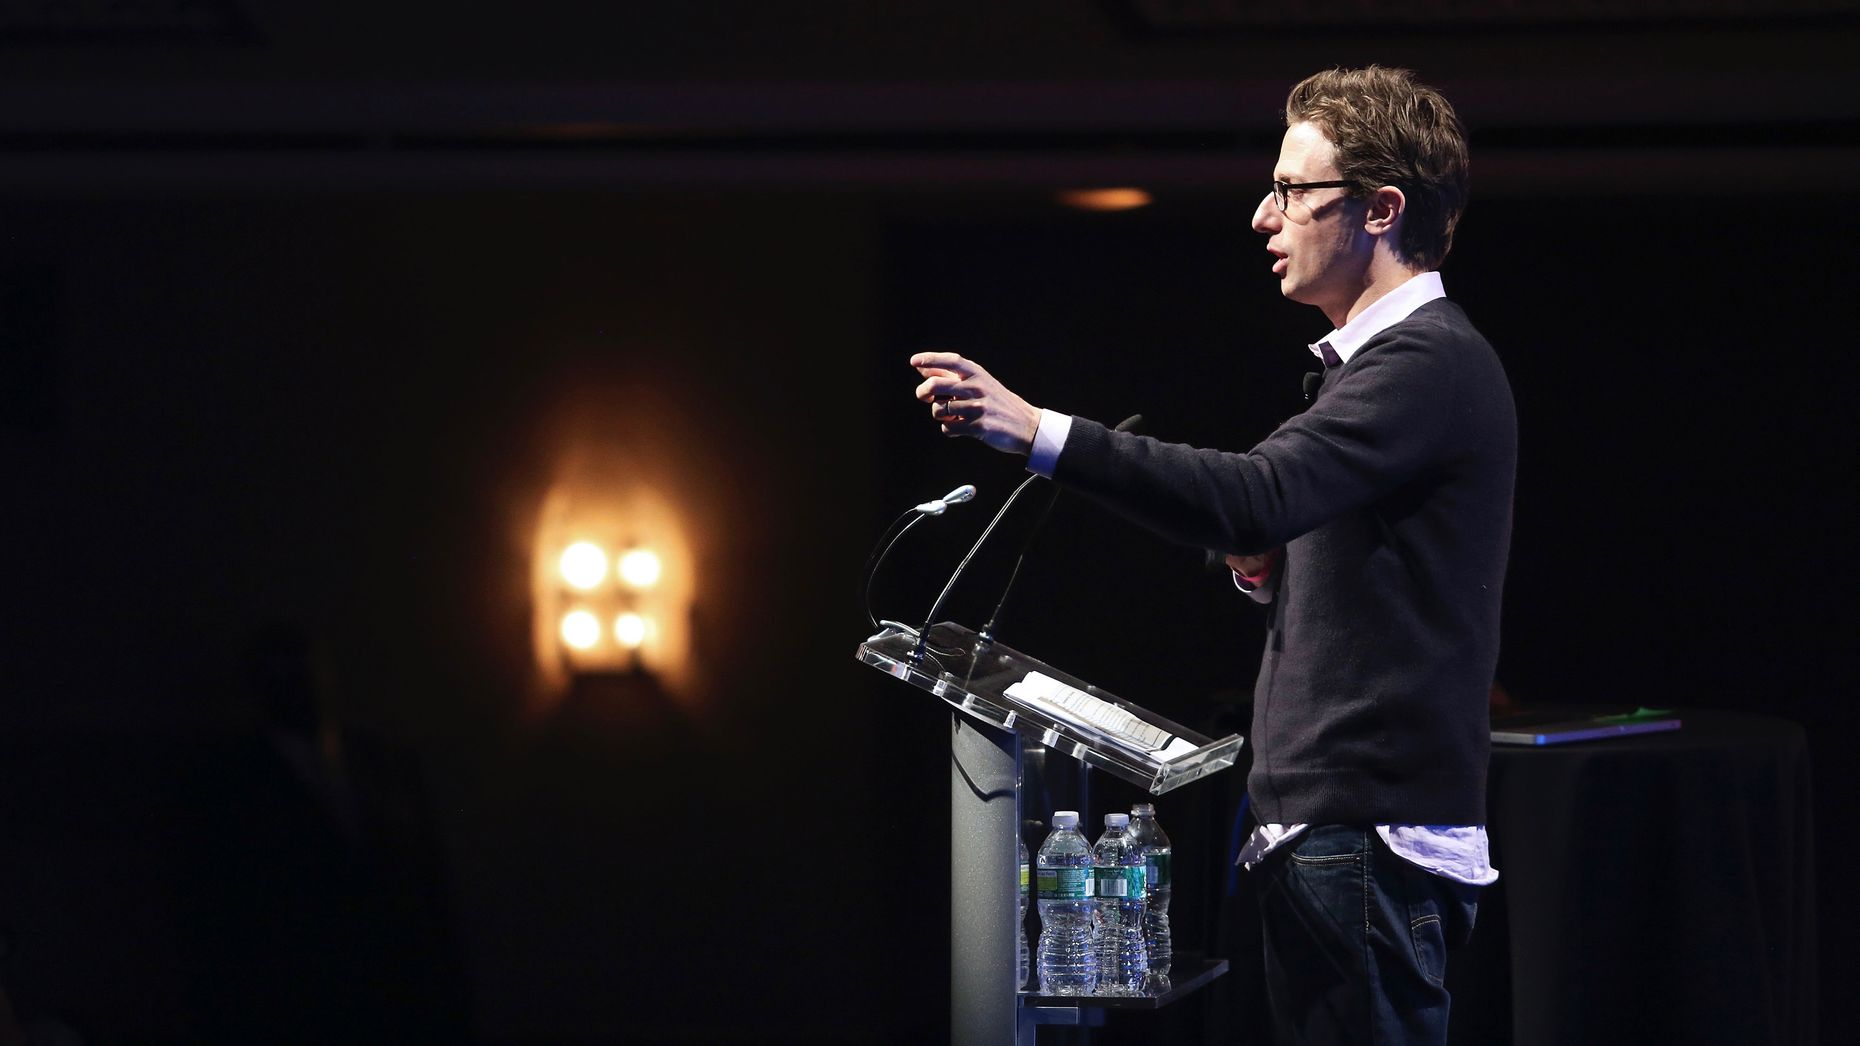 BuzzFeed CEO Jonah Peretti. Photo by Flickr/TCDNY 2013.